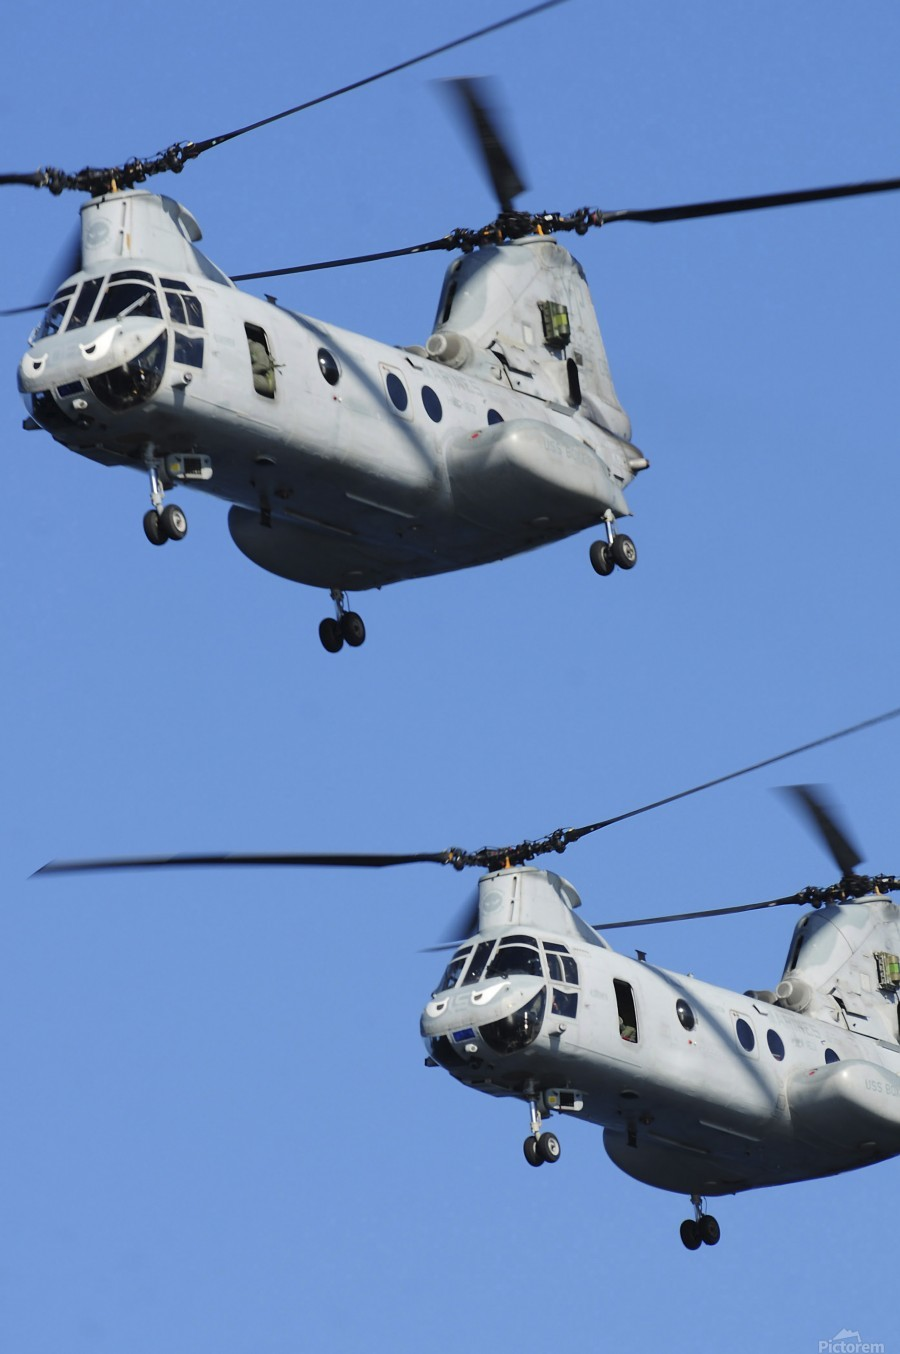 Two U.S. Marine Corps CH-46E Sea Knight helicopters in flight.  Print